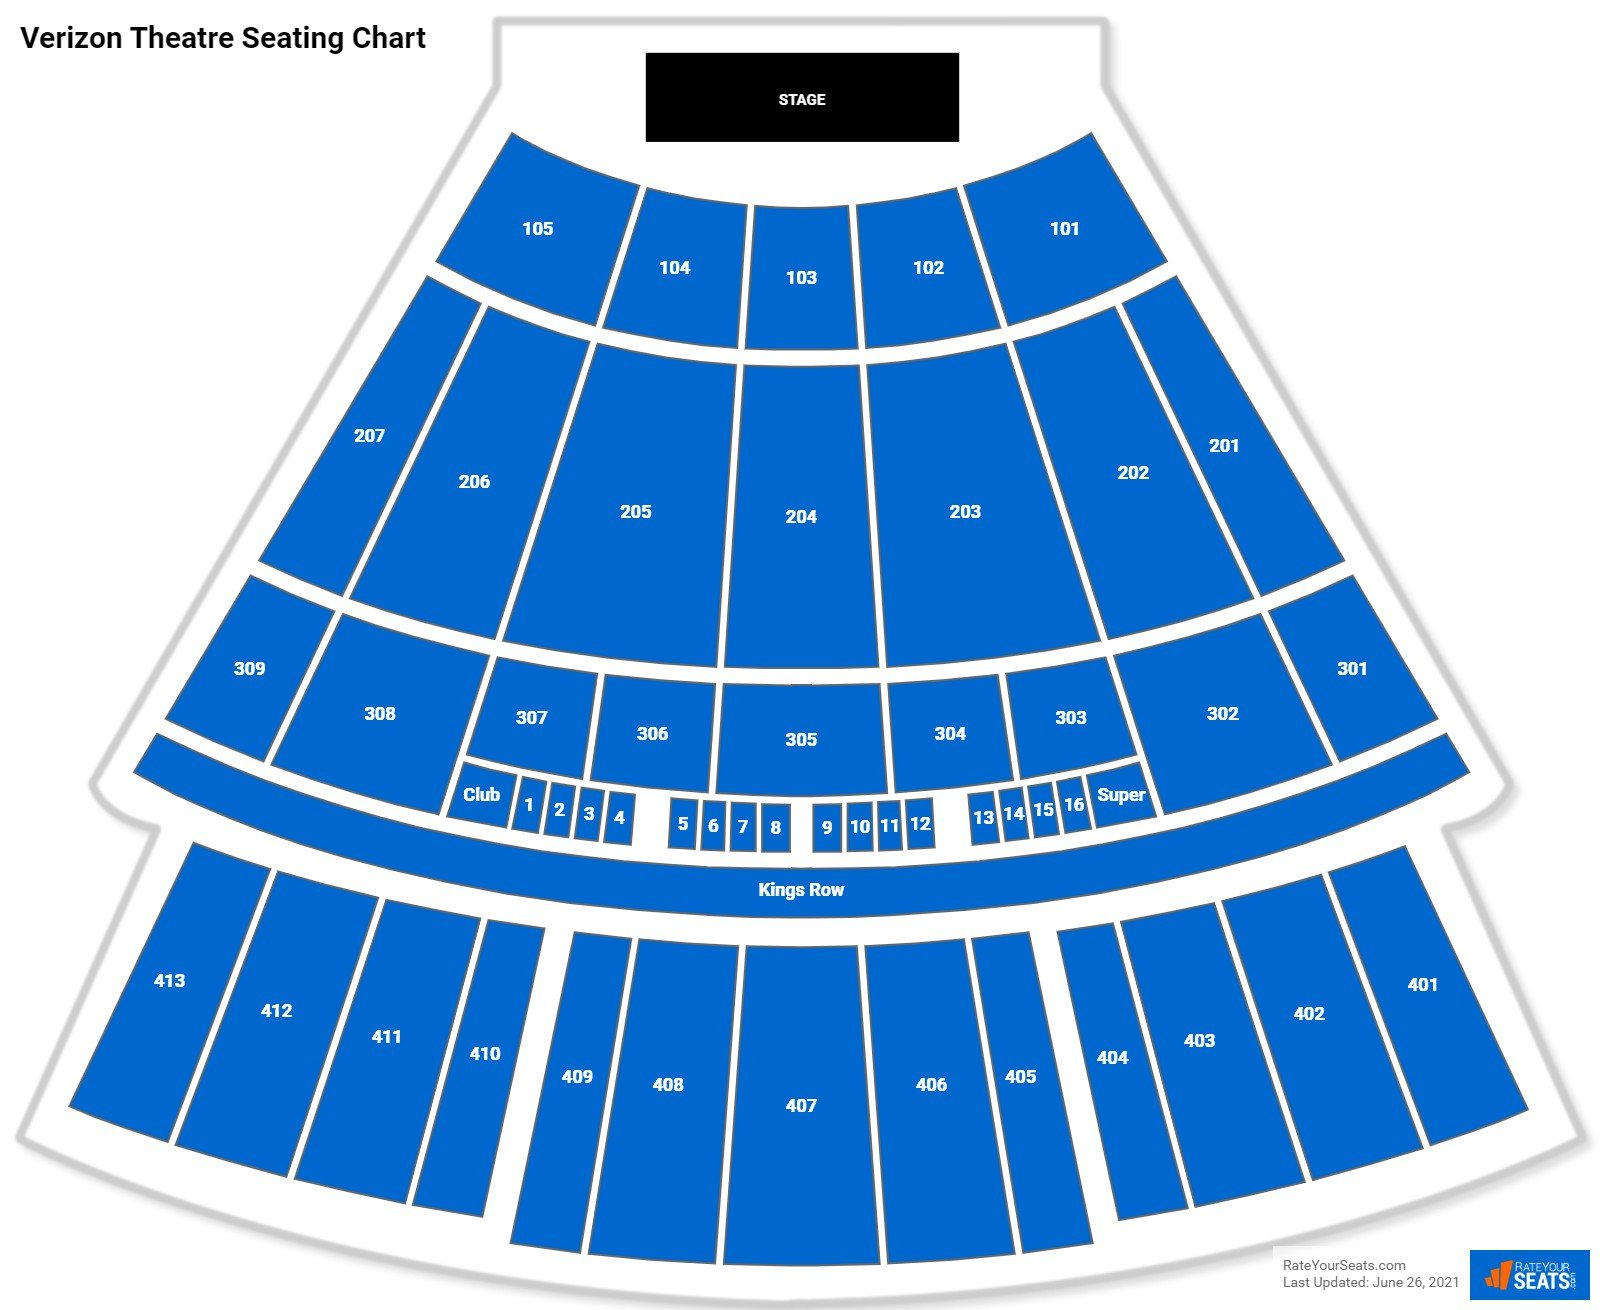 Verizon Theatre Seating Chart